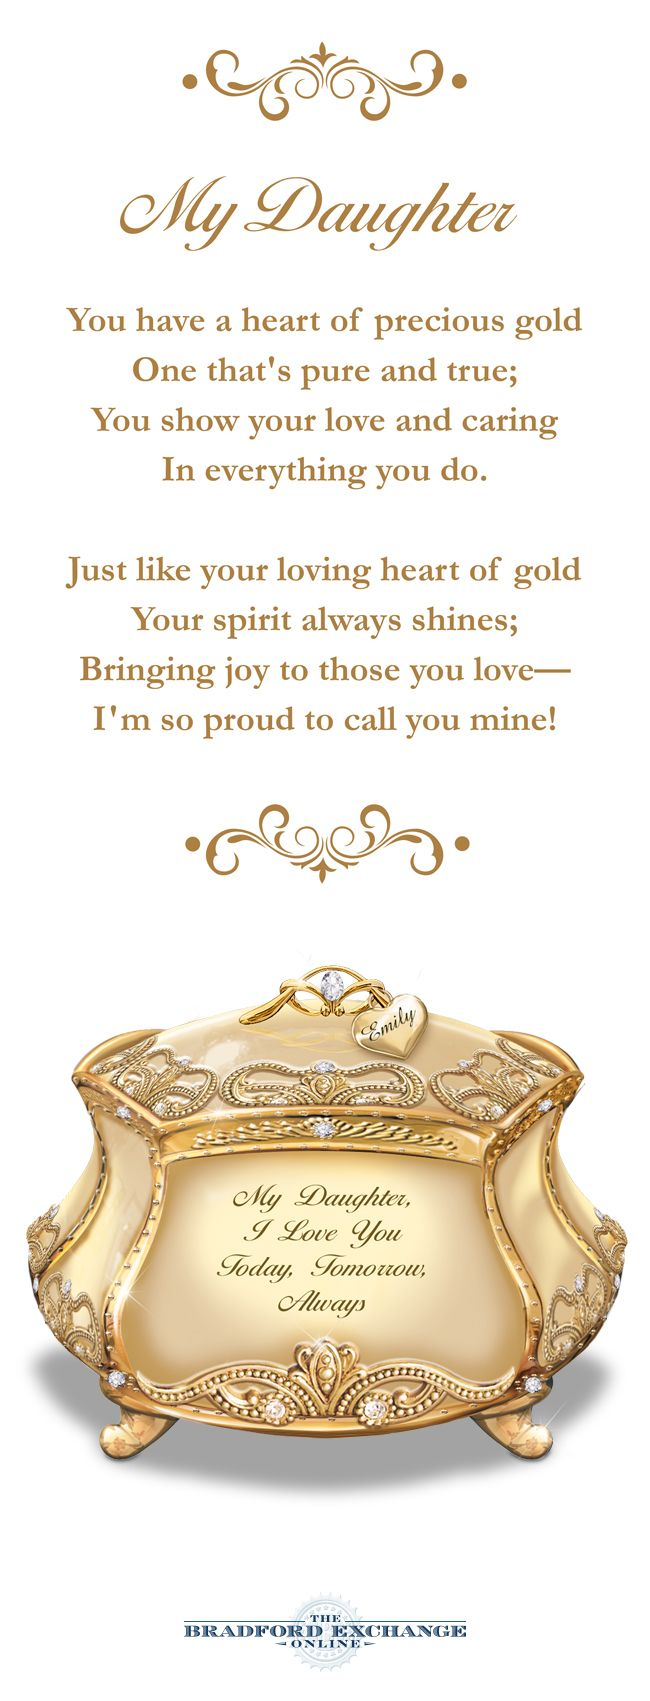 Tell your daughter you love her in song! This Heirloom Porcelain music box is plated in 22K gold and is graced with a meaningful message just for her. Plus, you can have it engraved with your daughter's name for free.